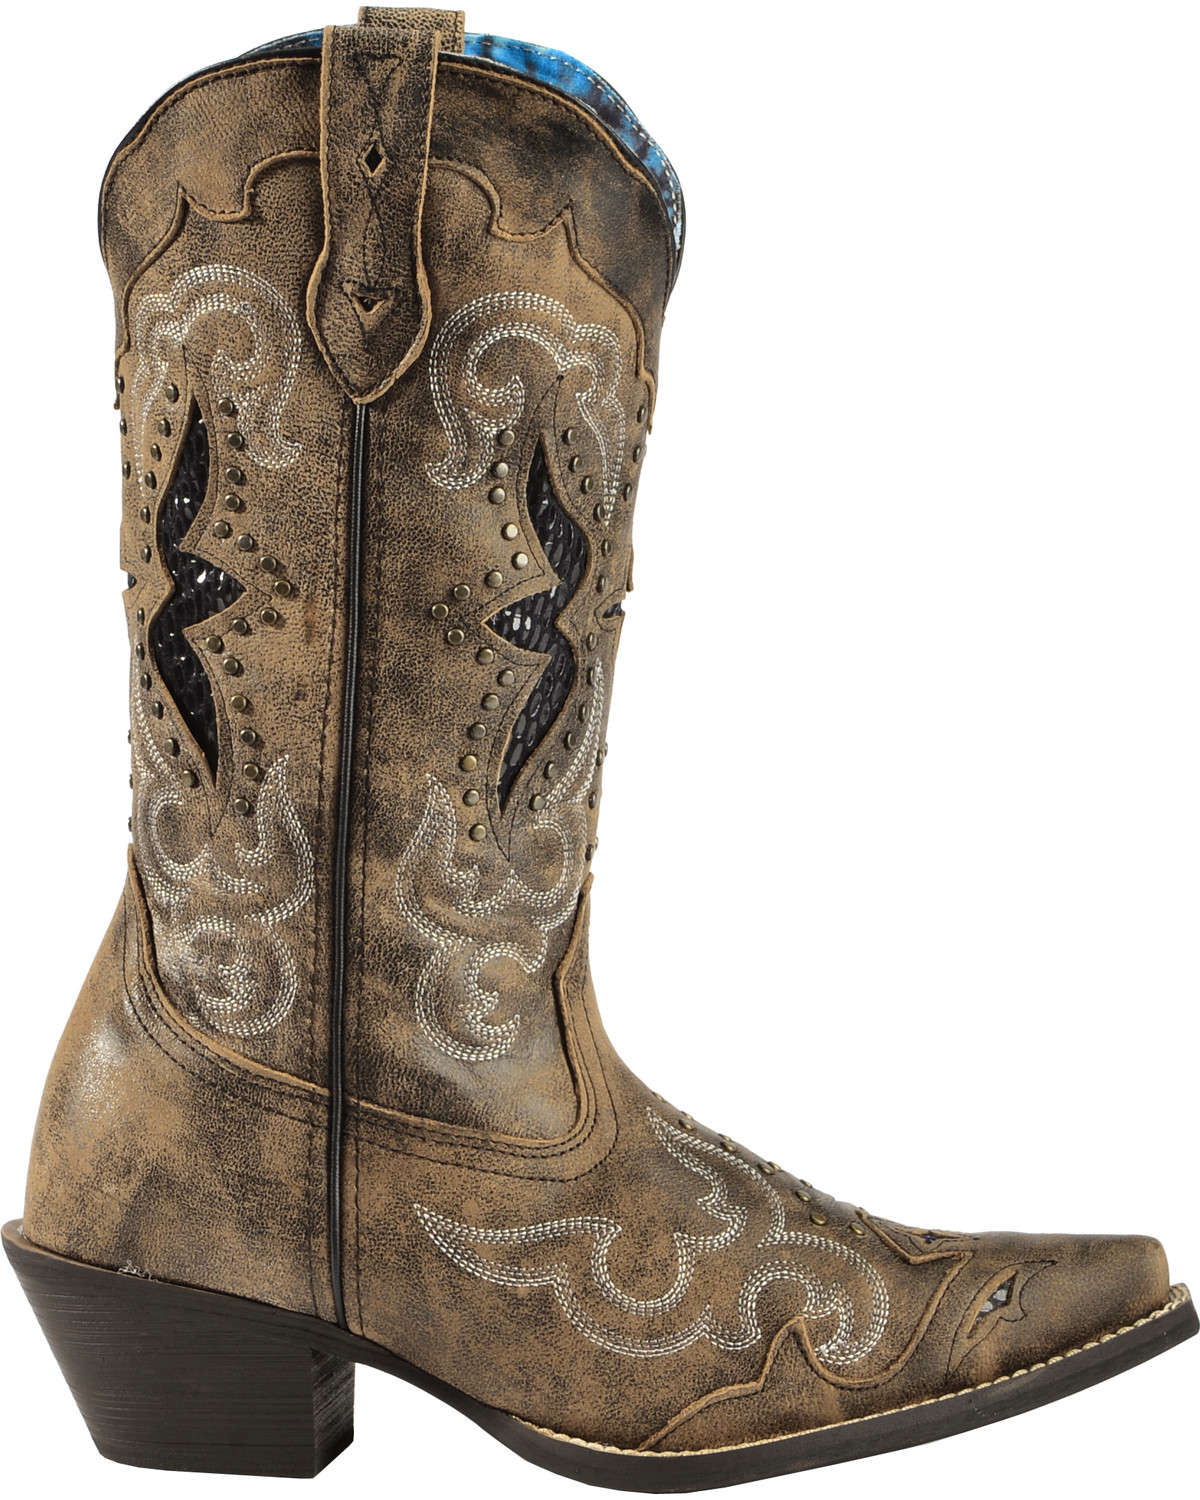 laredo women 39 s lucretia studded snake inlay cowgirl boots snip toe country outfitter. Black Bedroom Furniture Sets. Home Design Ideas